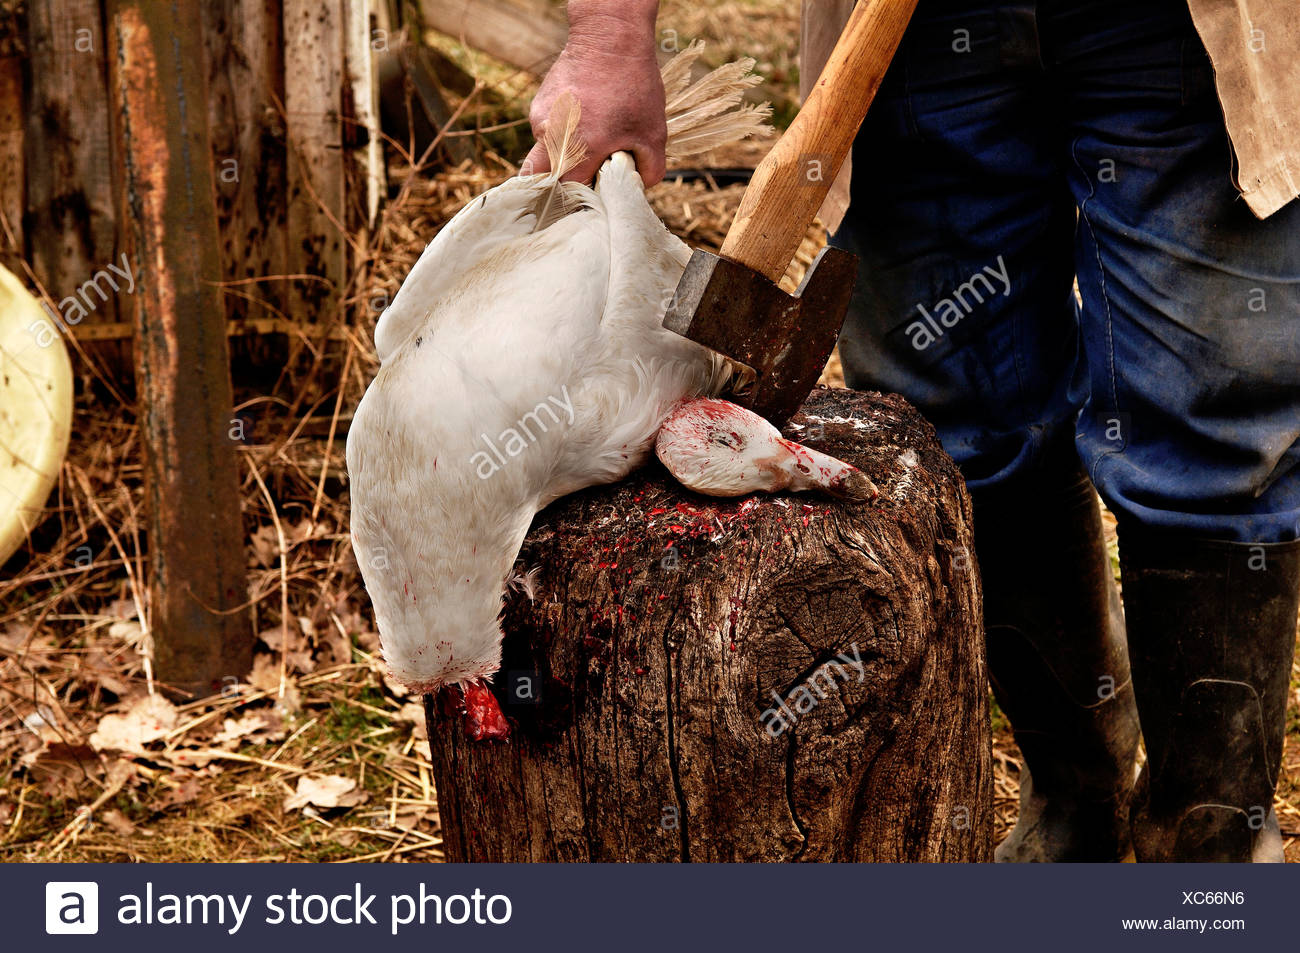 Home slaughtering (duck), farmer holding duck to bleed out on the hack stick, Eckental, Middle Franconia, Bavaria, Germany, Eur - Stock Image